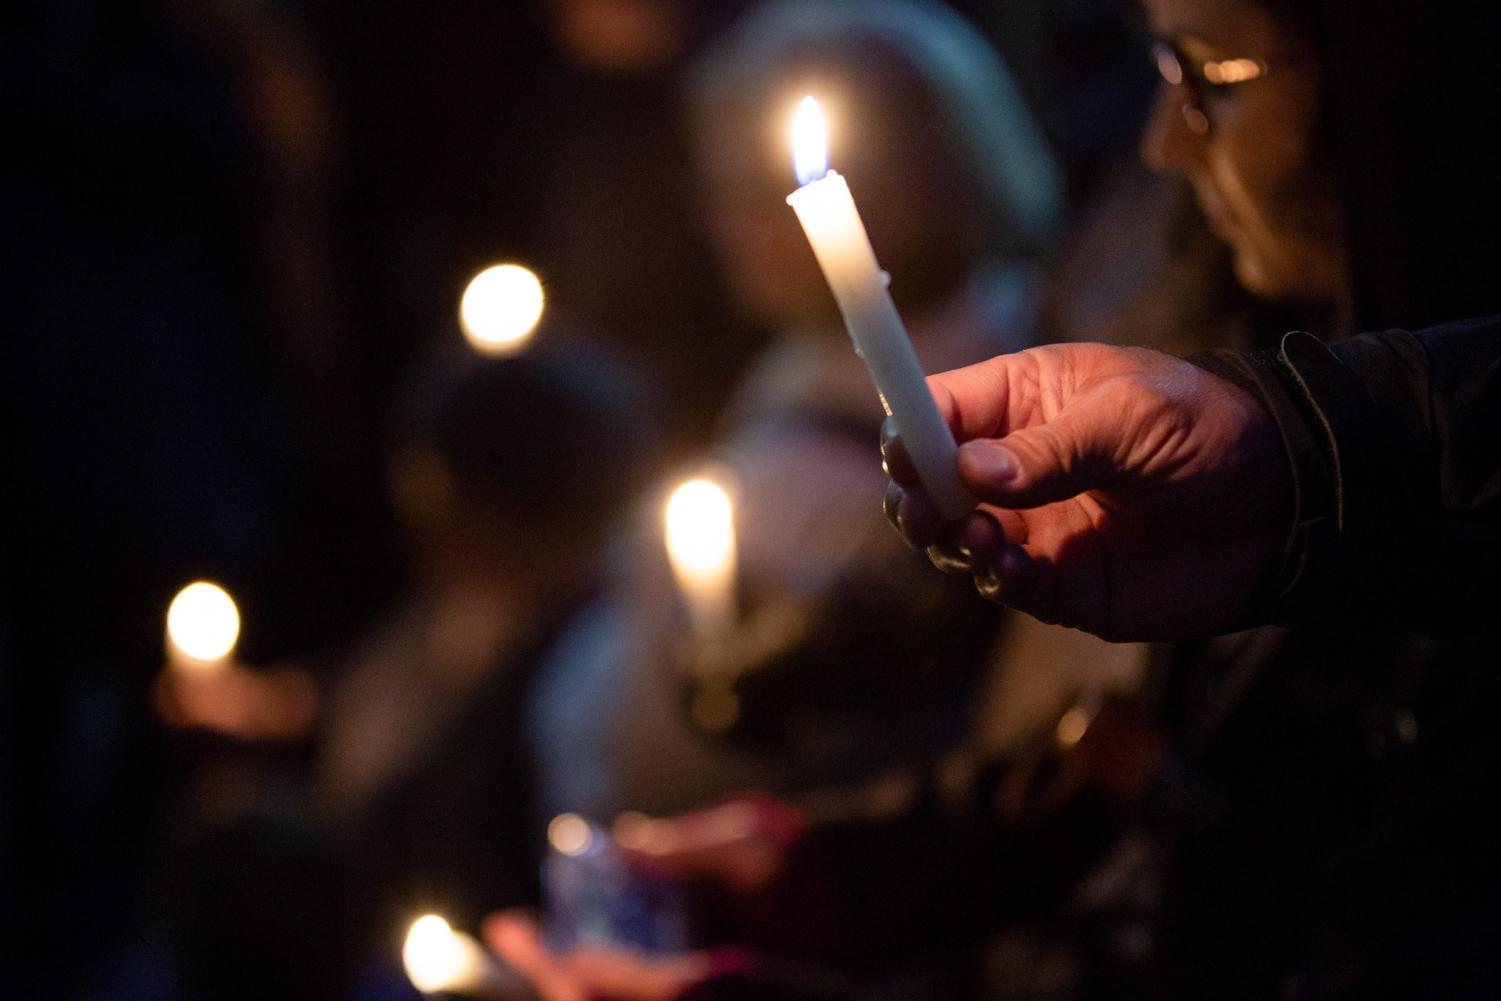 Mourners light candles at a vigil for the victims of the Pittsburgh synagogue shooting. The victims were the latest victims of the mass shooting cycle. The mass shooting cycle needs to end, but the only way to end it is by voting.